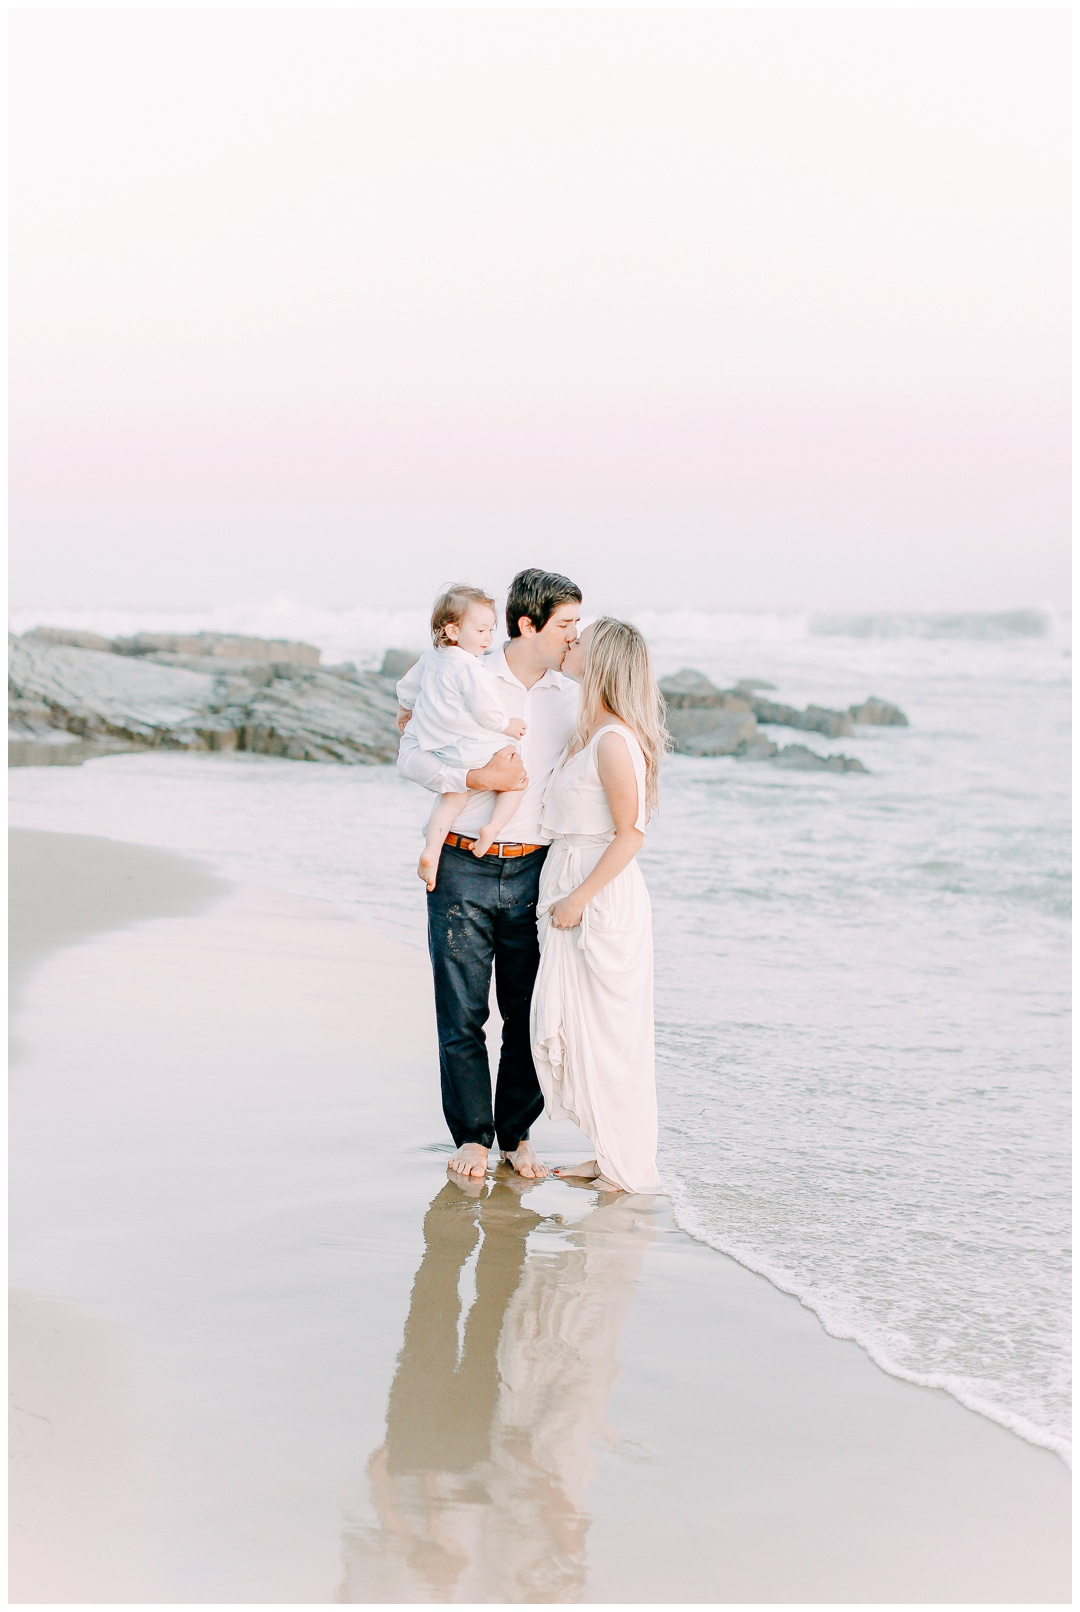 Newport_Beach_Maternity_Photographer_Orange_County_Maternity_Photography_Cori_Kleckner_Photography_Orange_County_Family_Photographer_Beach_Maternity_Session_1141.jpg